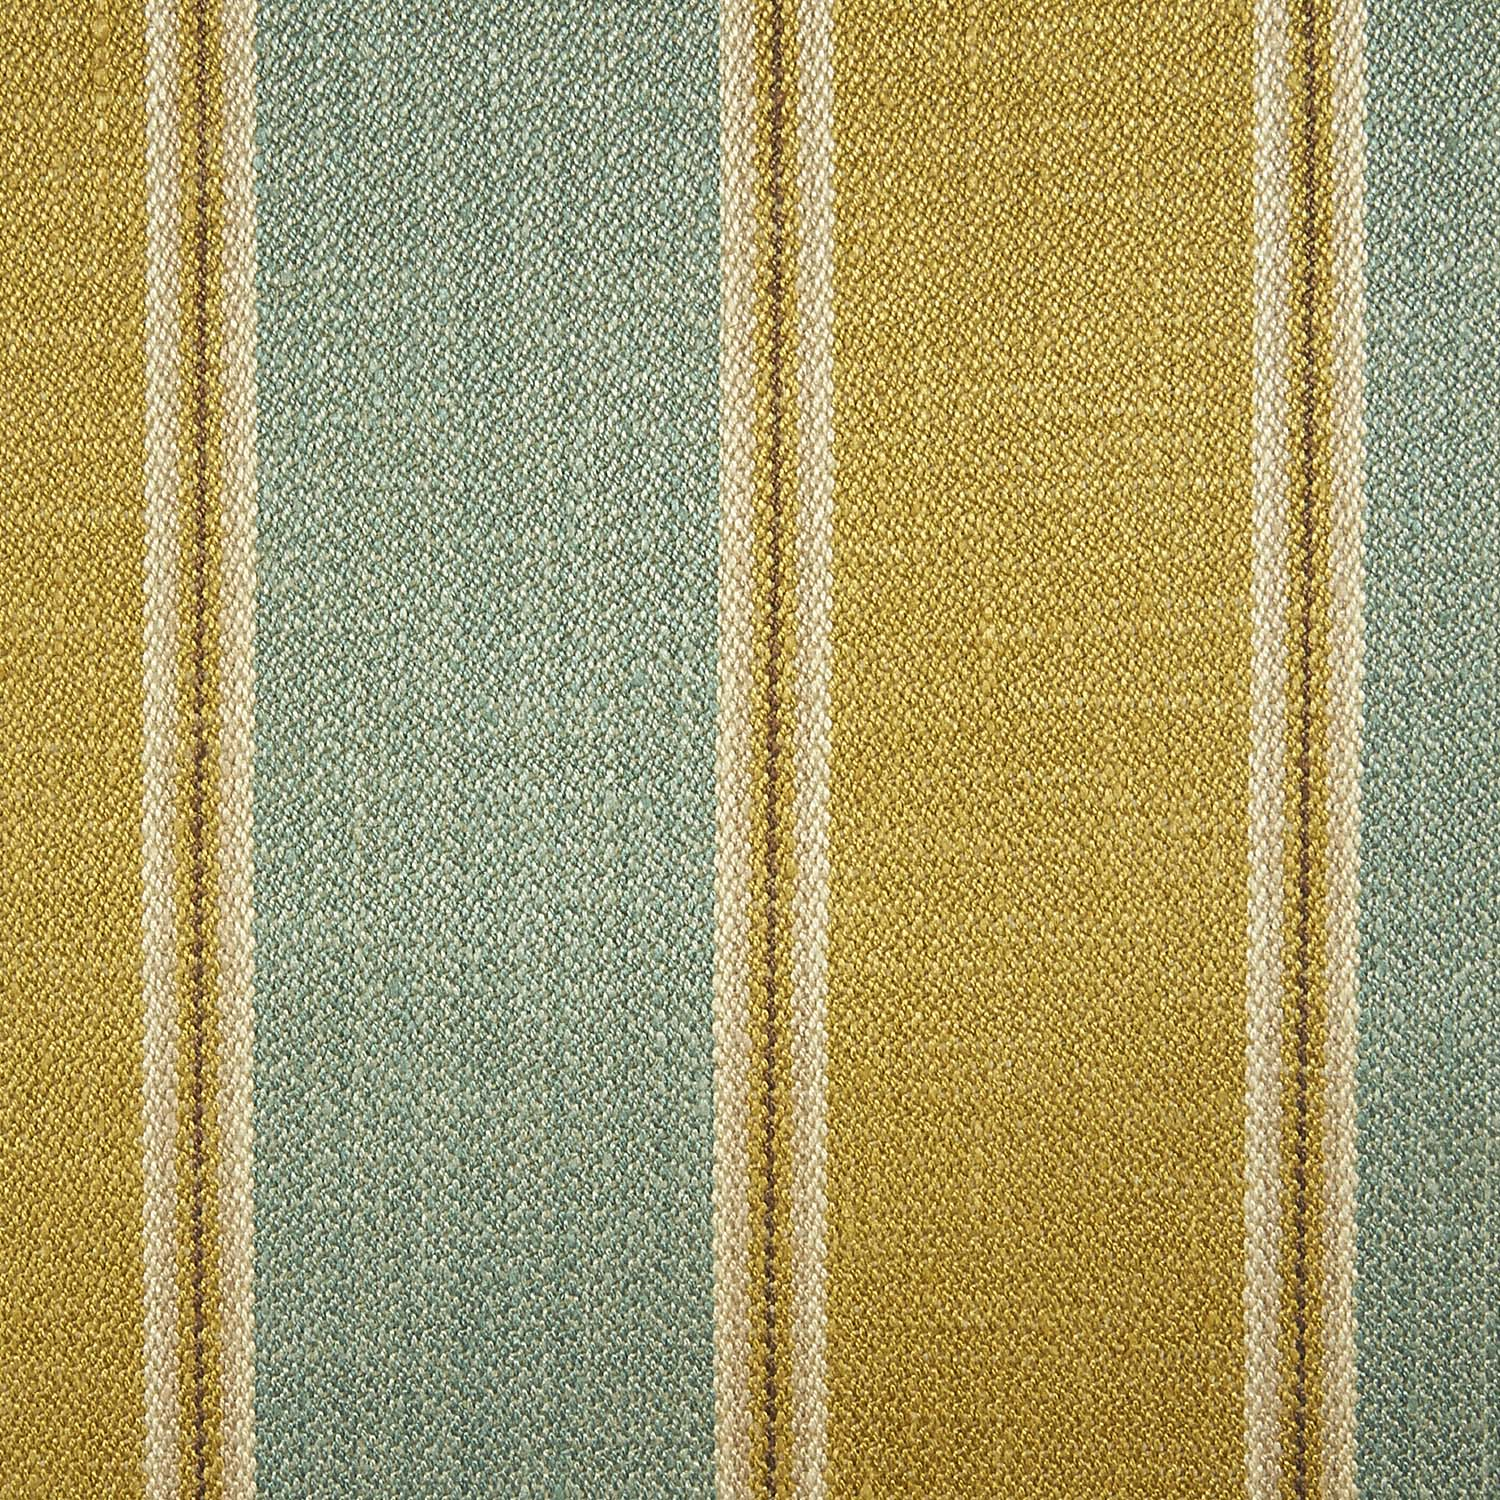 """<p><strong>LAUNCESTON STRIPE</strong> olive/aqua 1300-04 <span style=""""color:red""""> Discontinued</span><a href=mailto:sales@blithfield.co.uk>Contact</a>for stock availability</p>"""